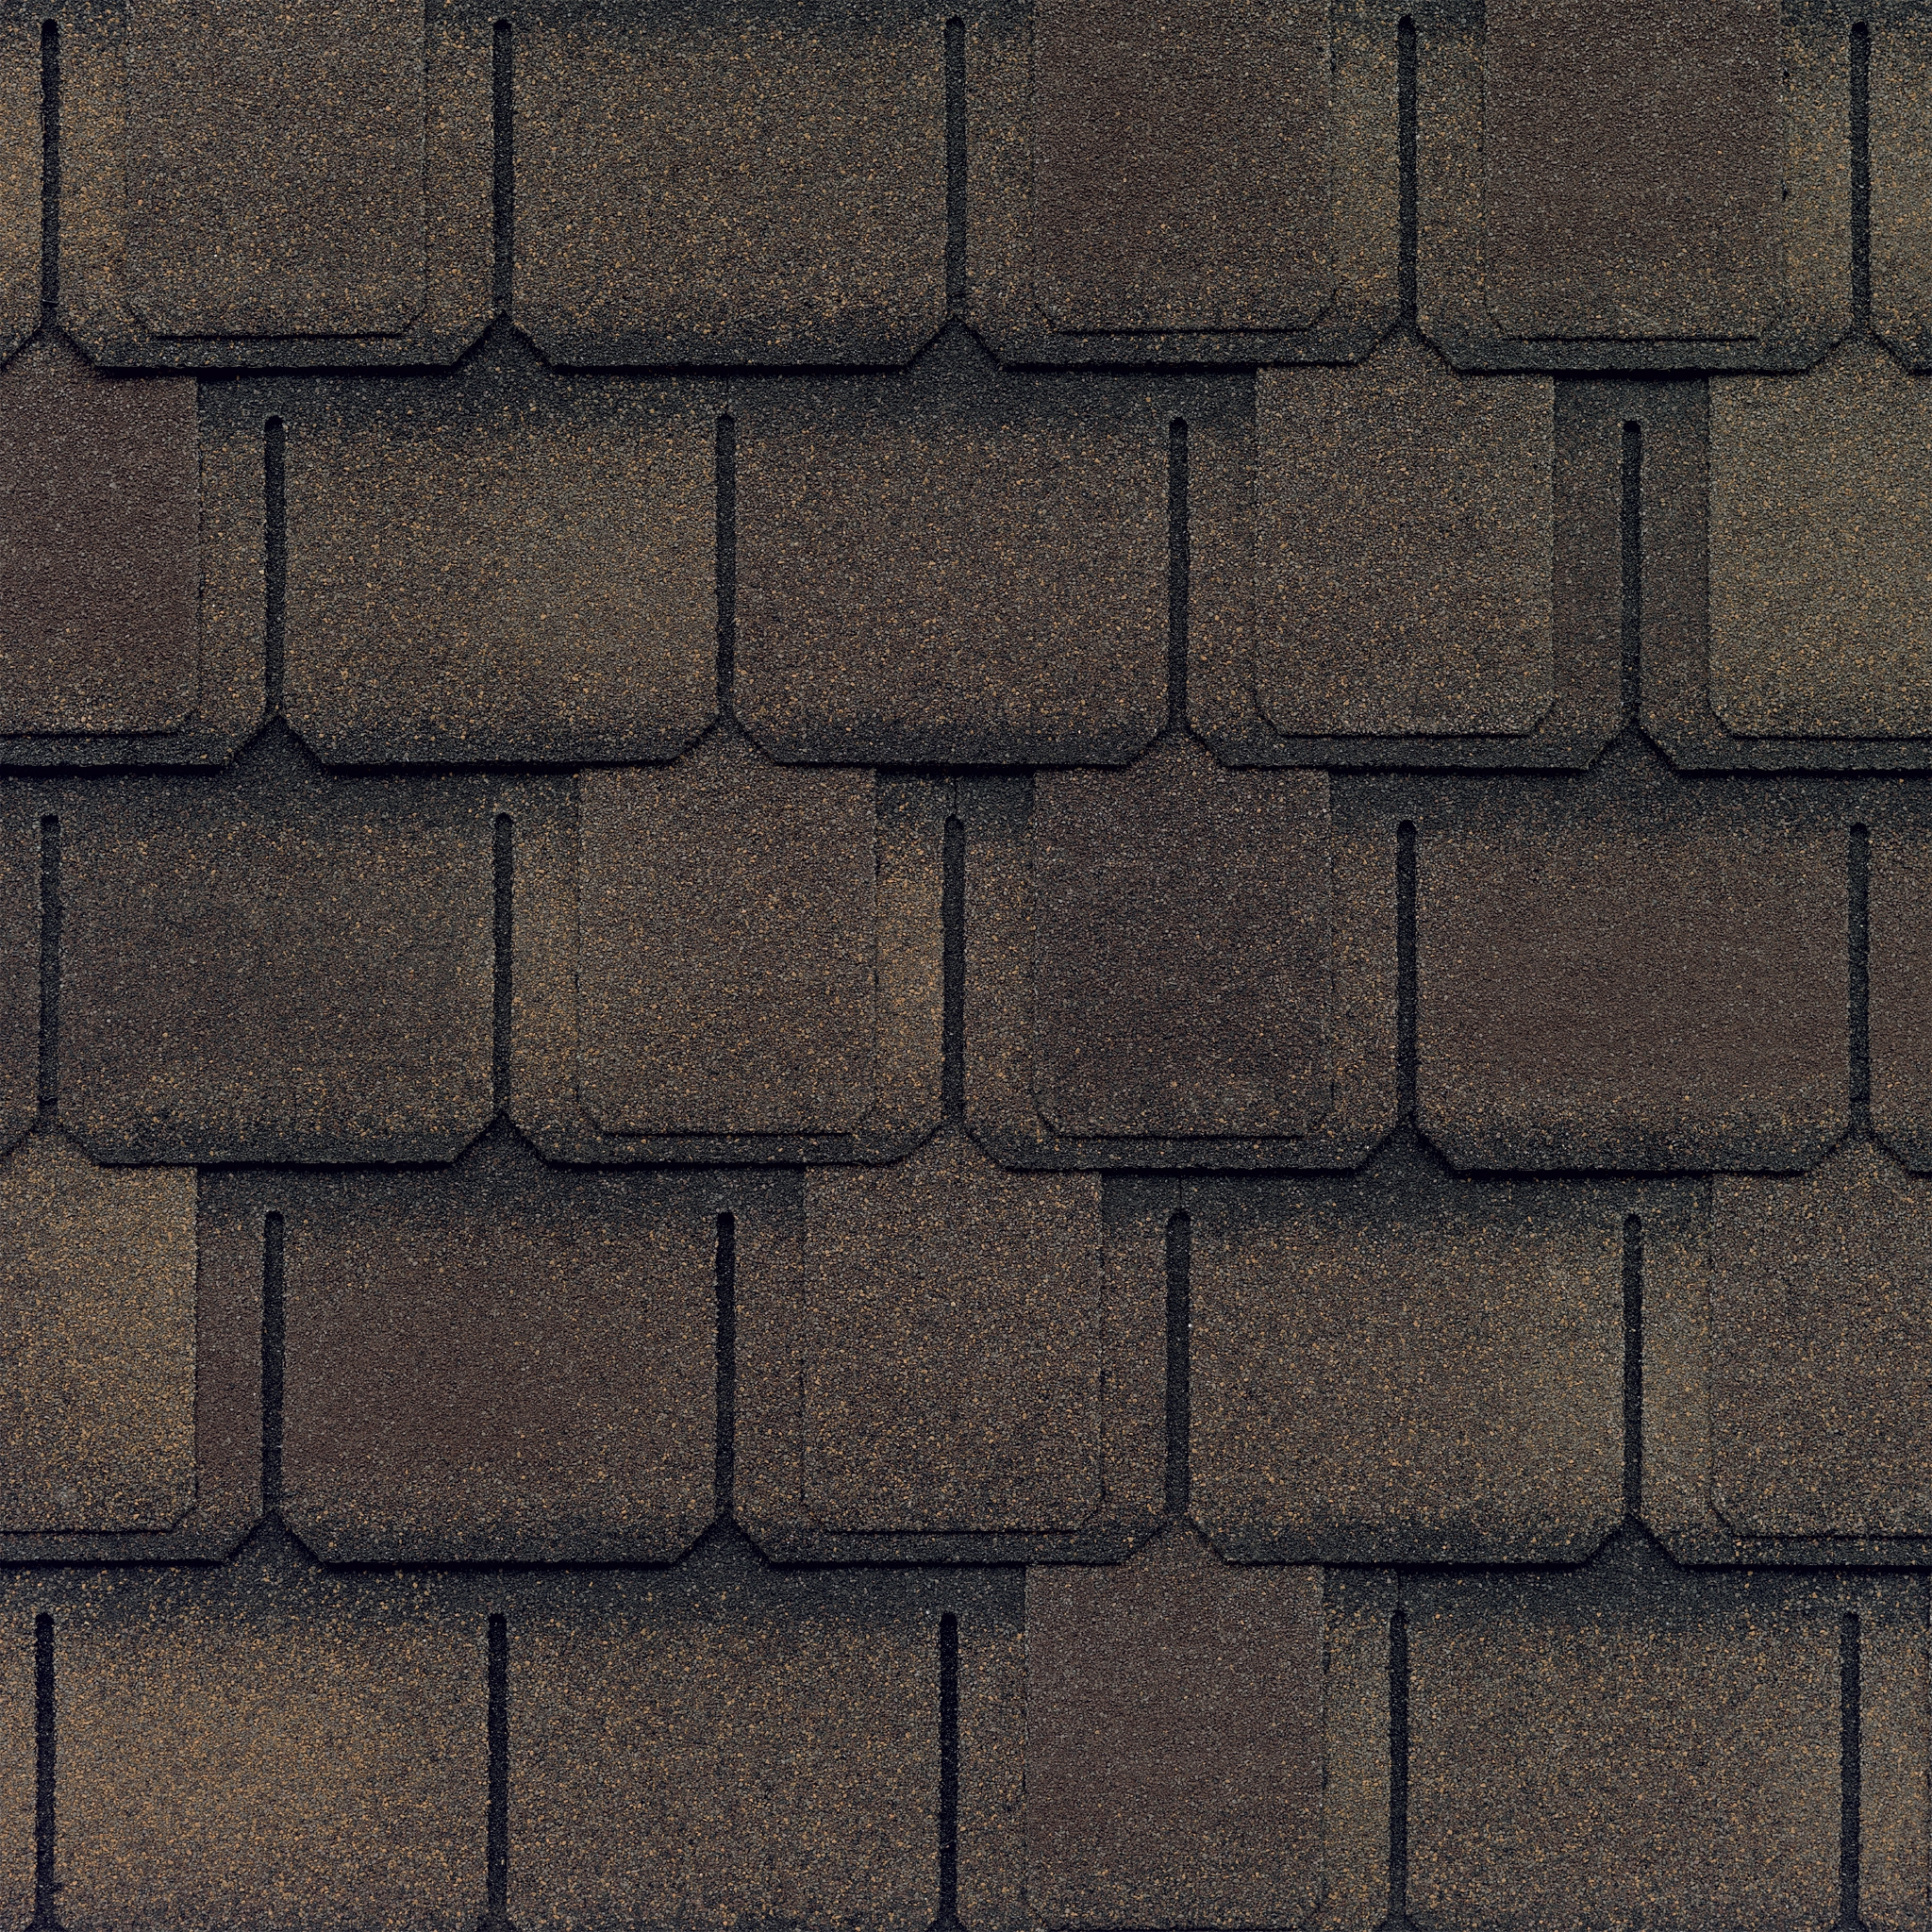 Chic Camelot Gaf Timberline Hd Barkwood For Interesting Roofing Ideas